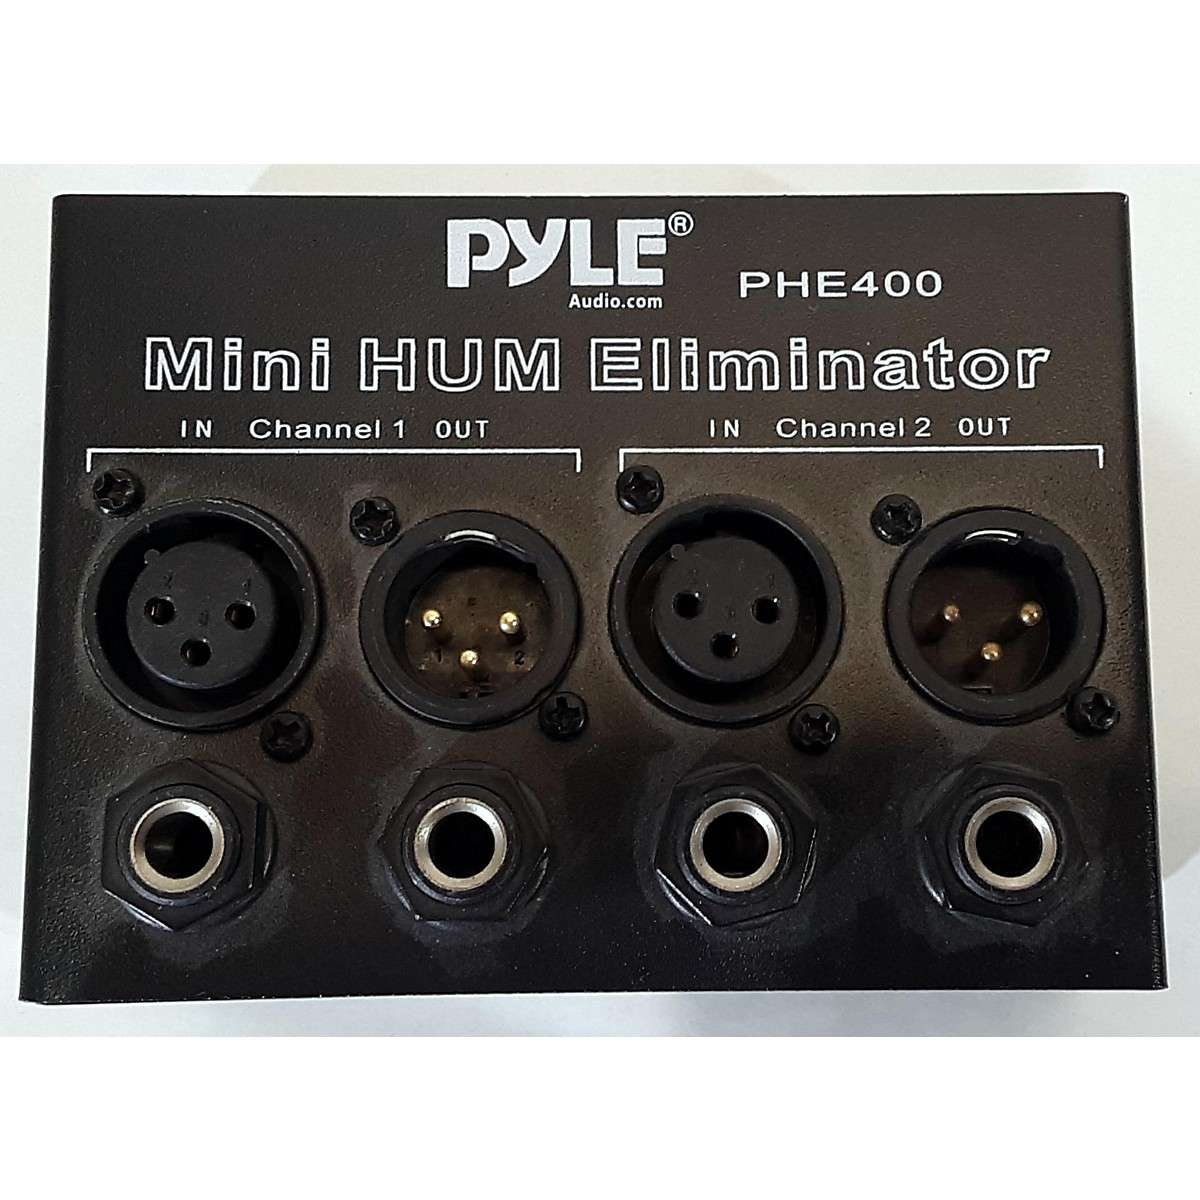 Pyle PHE400 Noise Gate